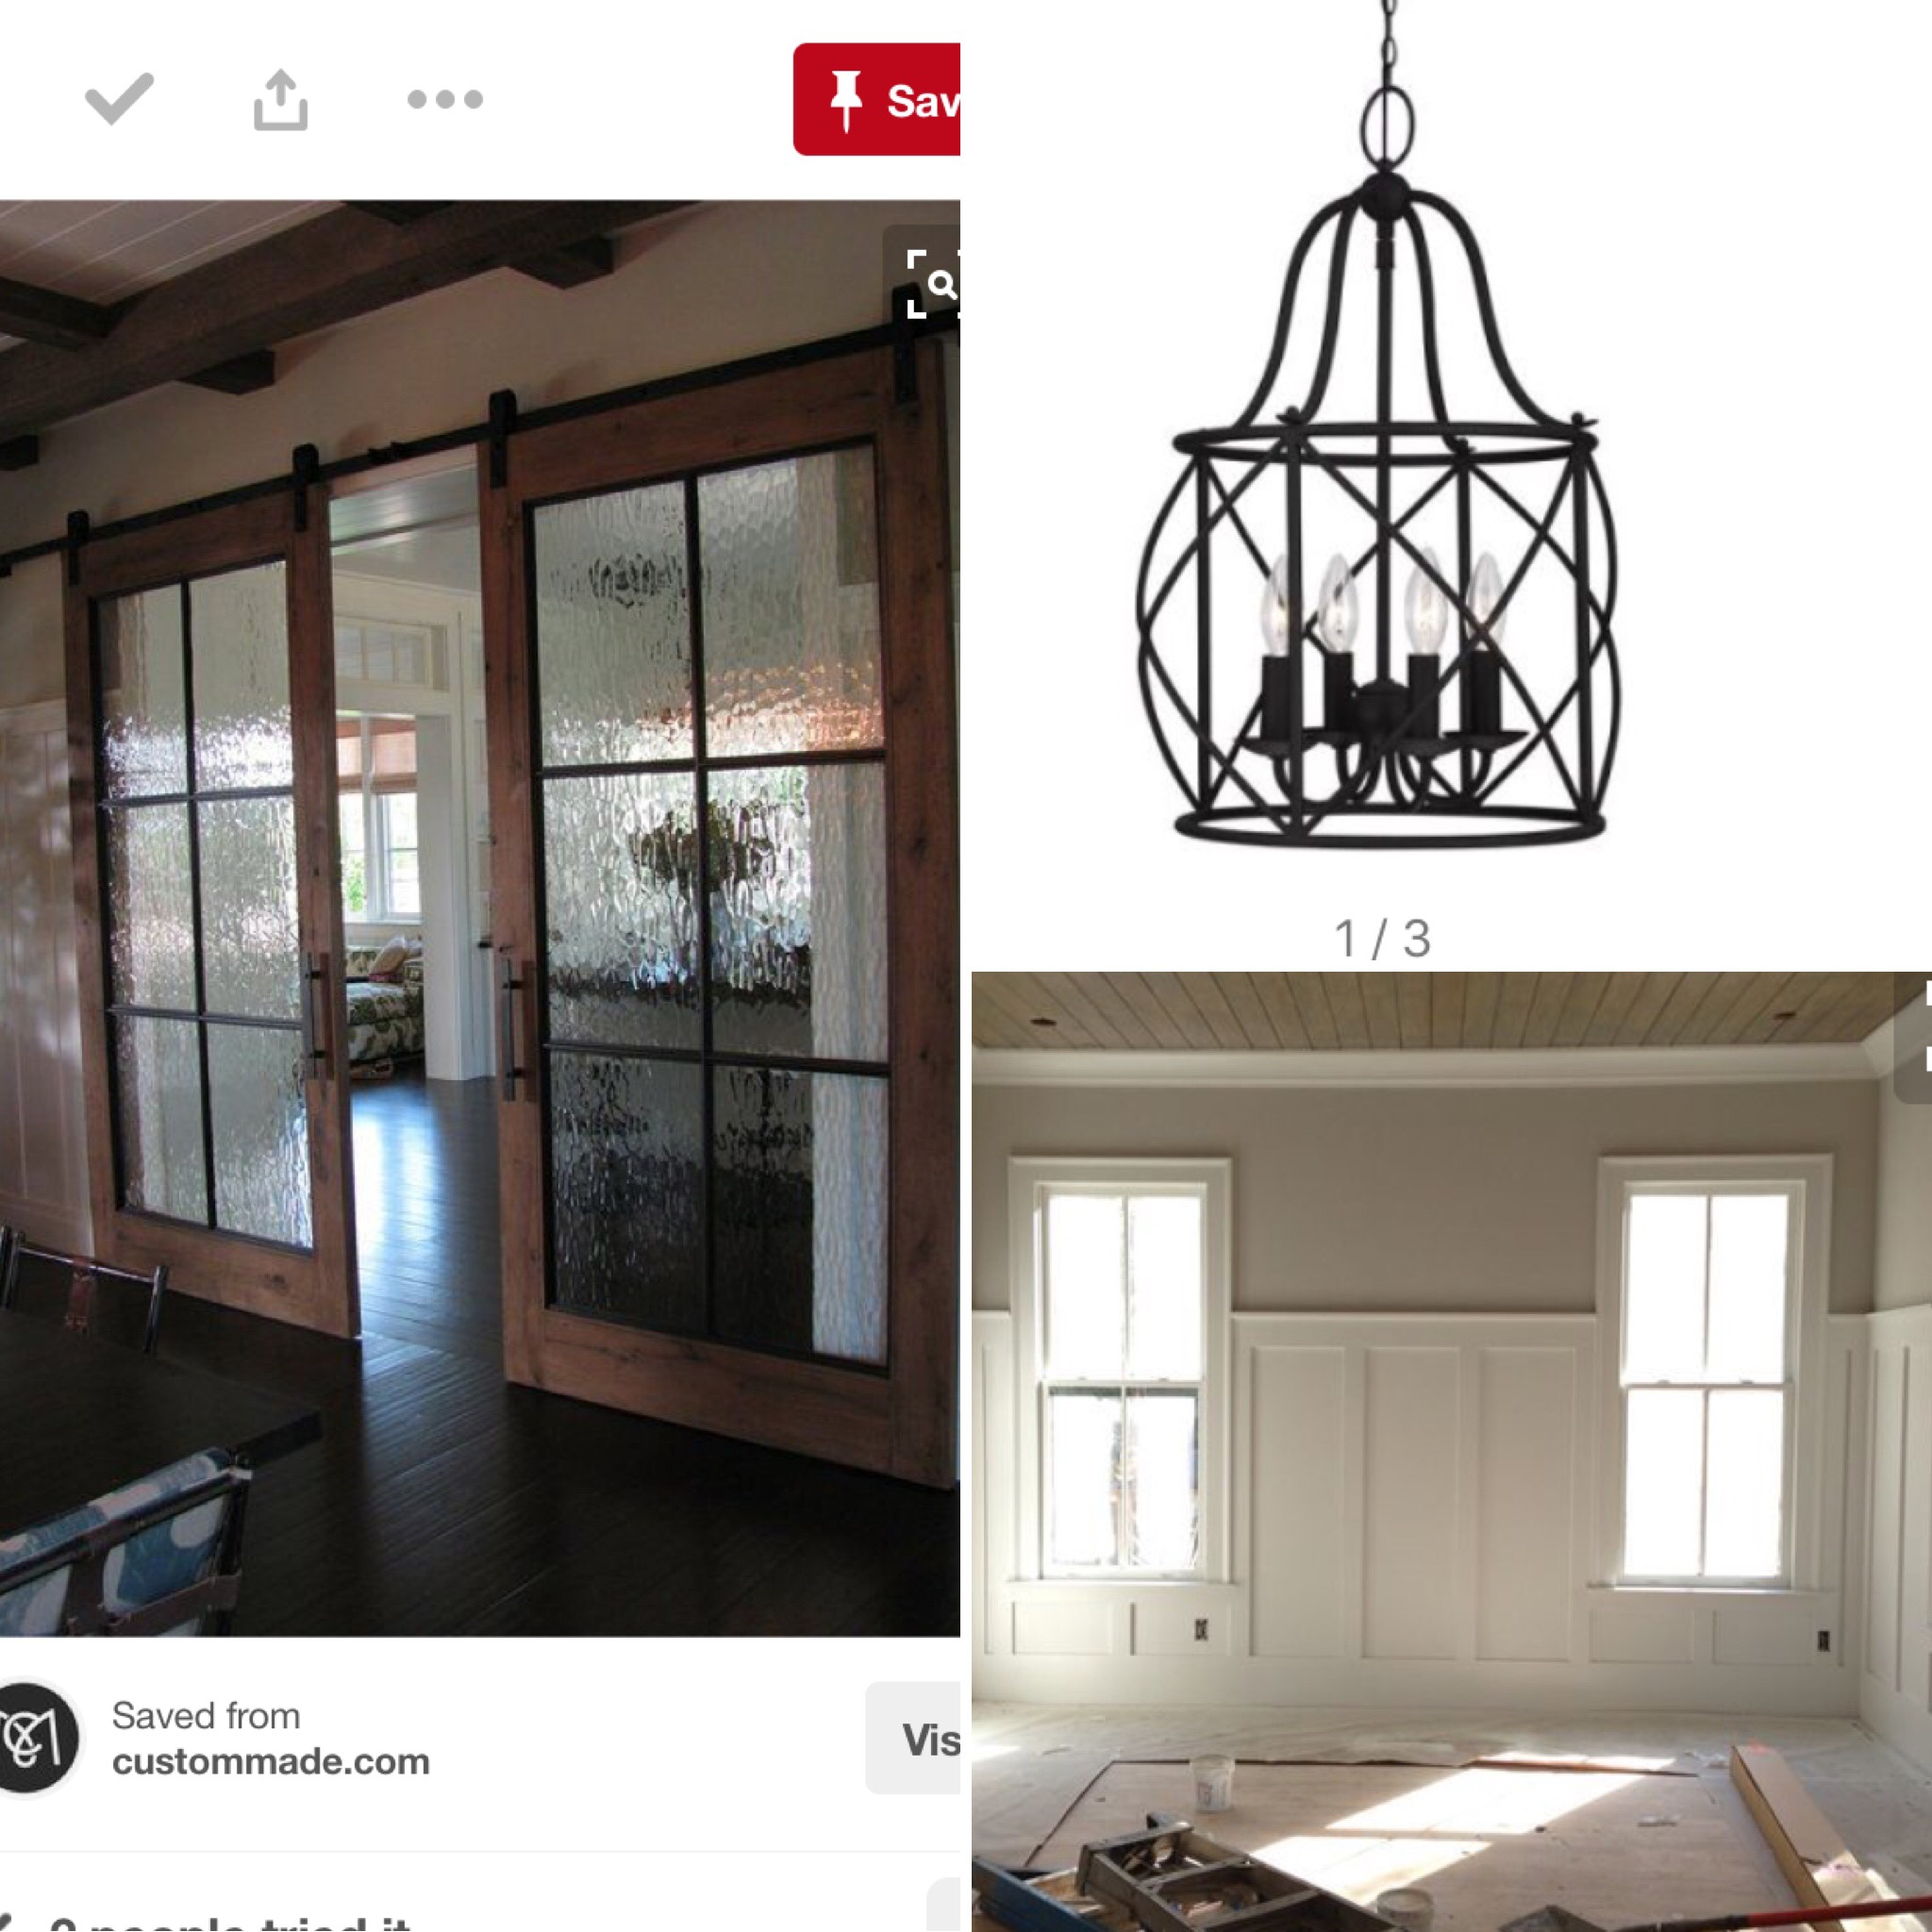 Inspiration - Wood stained glass sliding doors, black light fixture & 1/2 wall wainscoting.